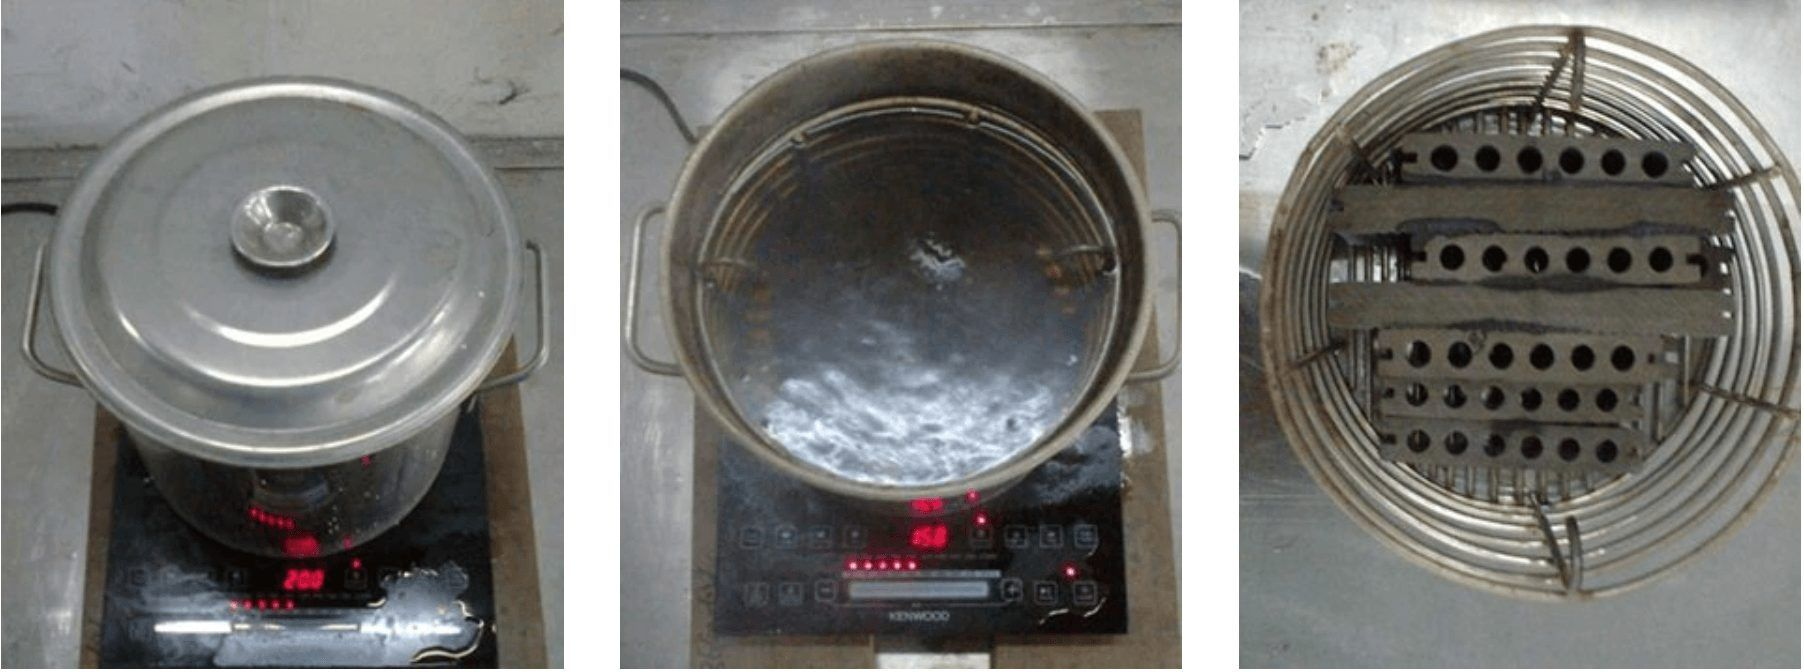 BOIL THE BOARD UP TO 80 HOURS OR MORE